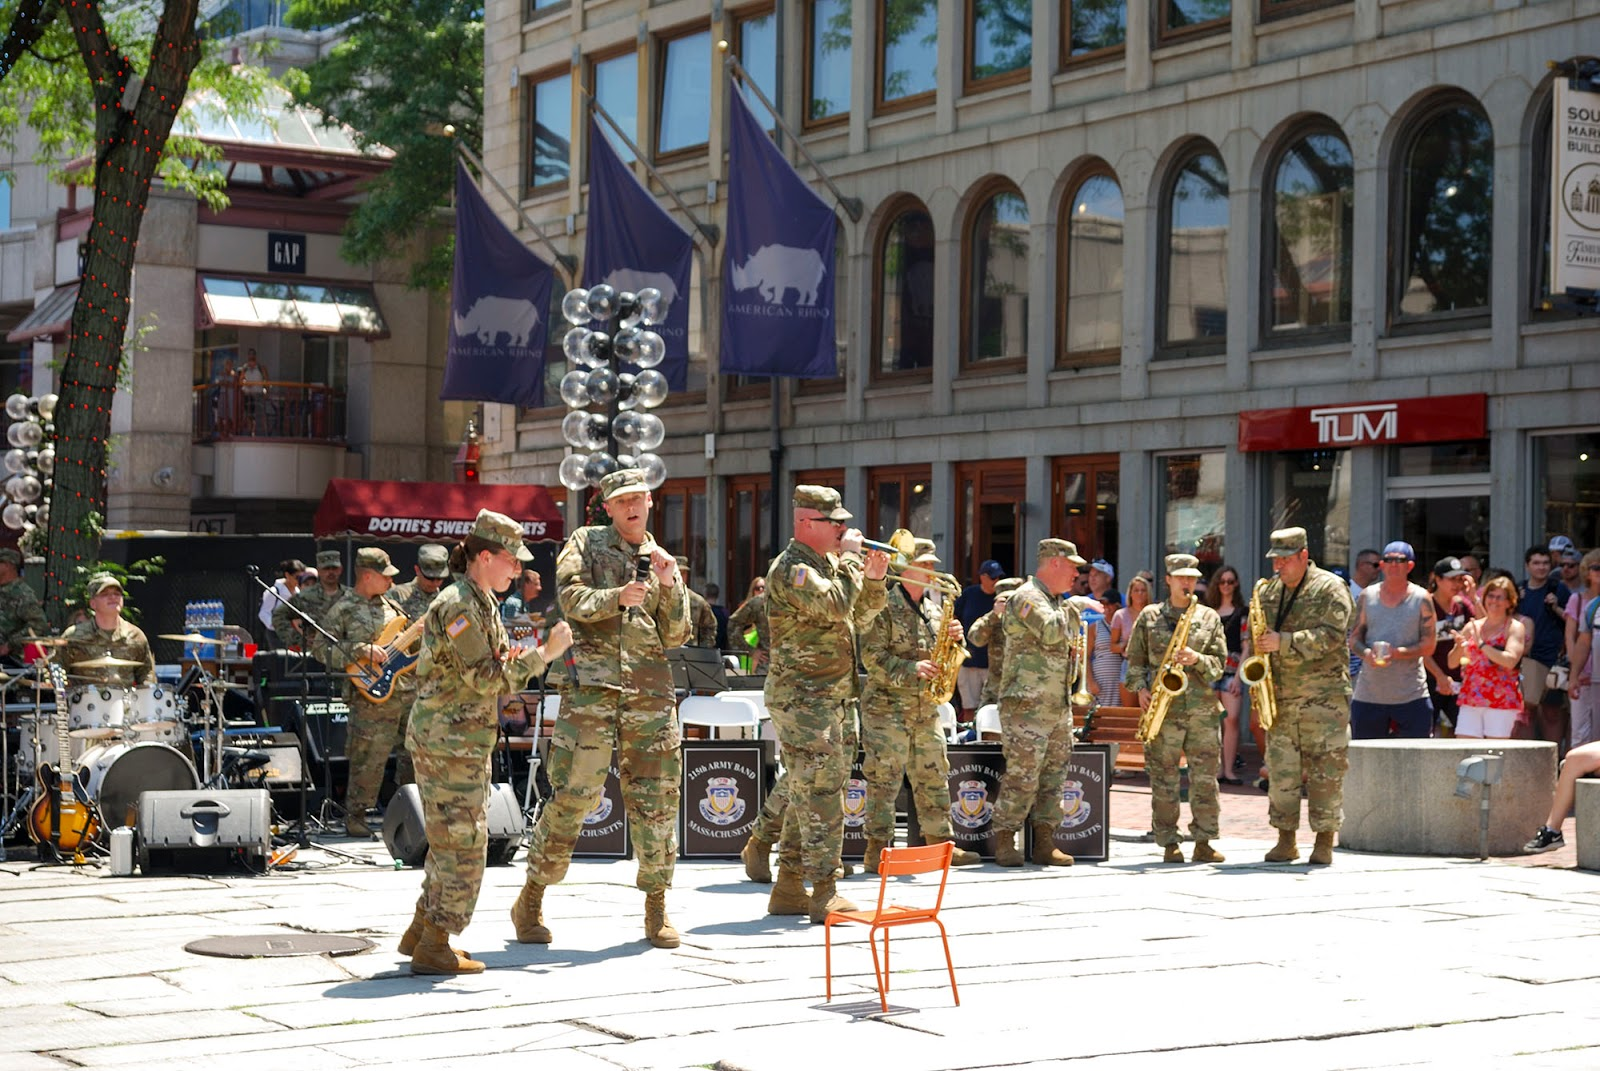 quincy market faneuil hall army band music street boston itinerary plan guide tourism usa america park east coast